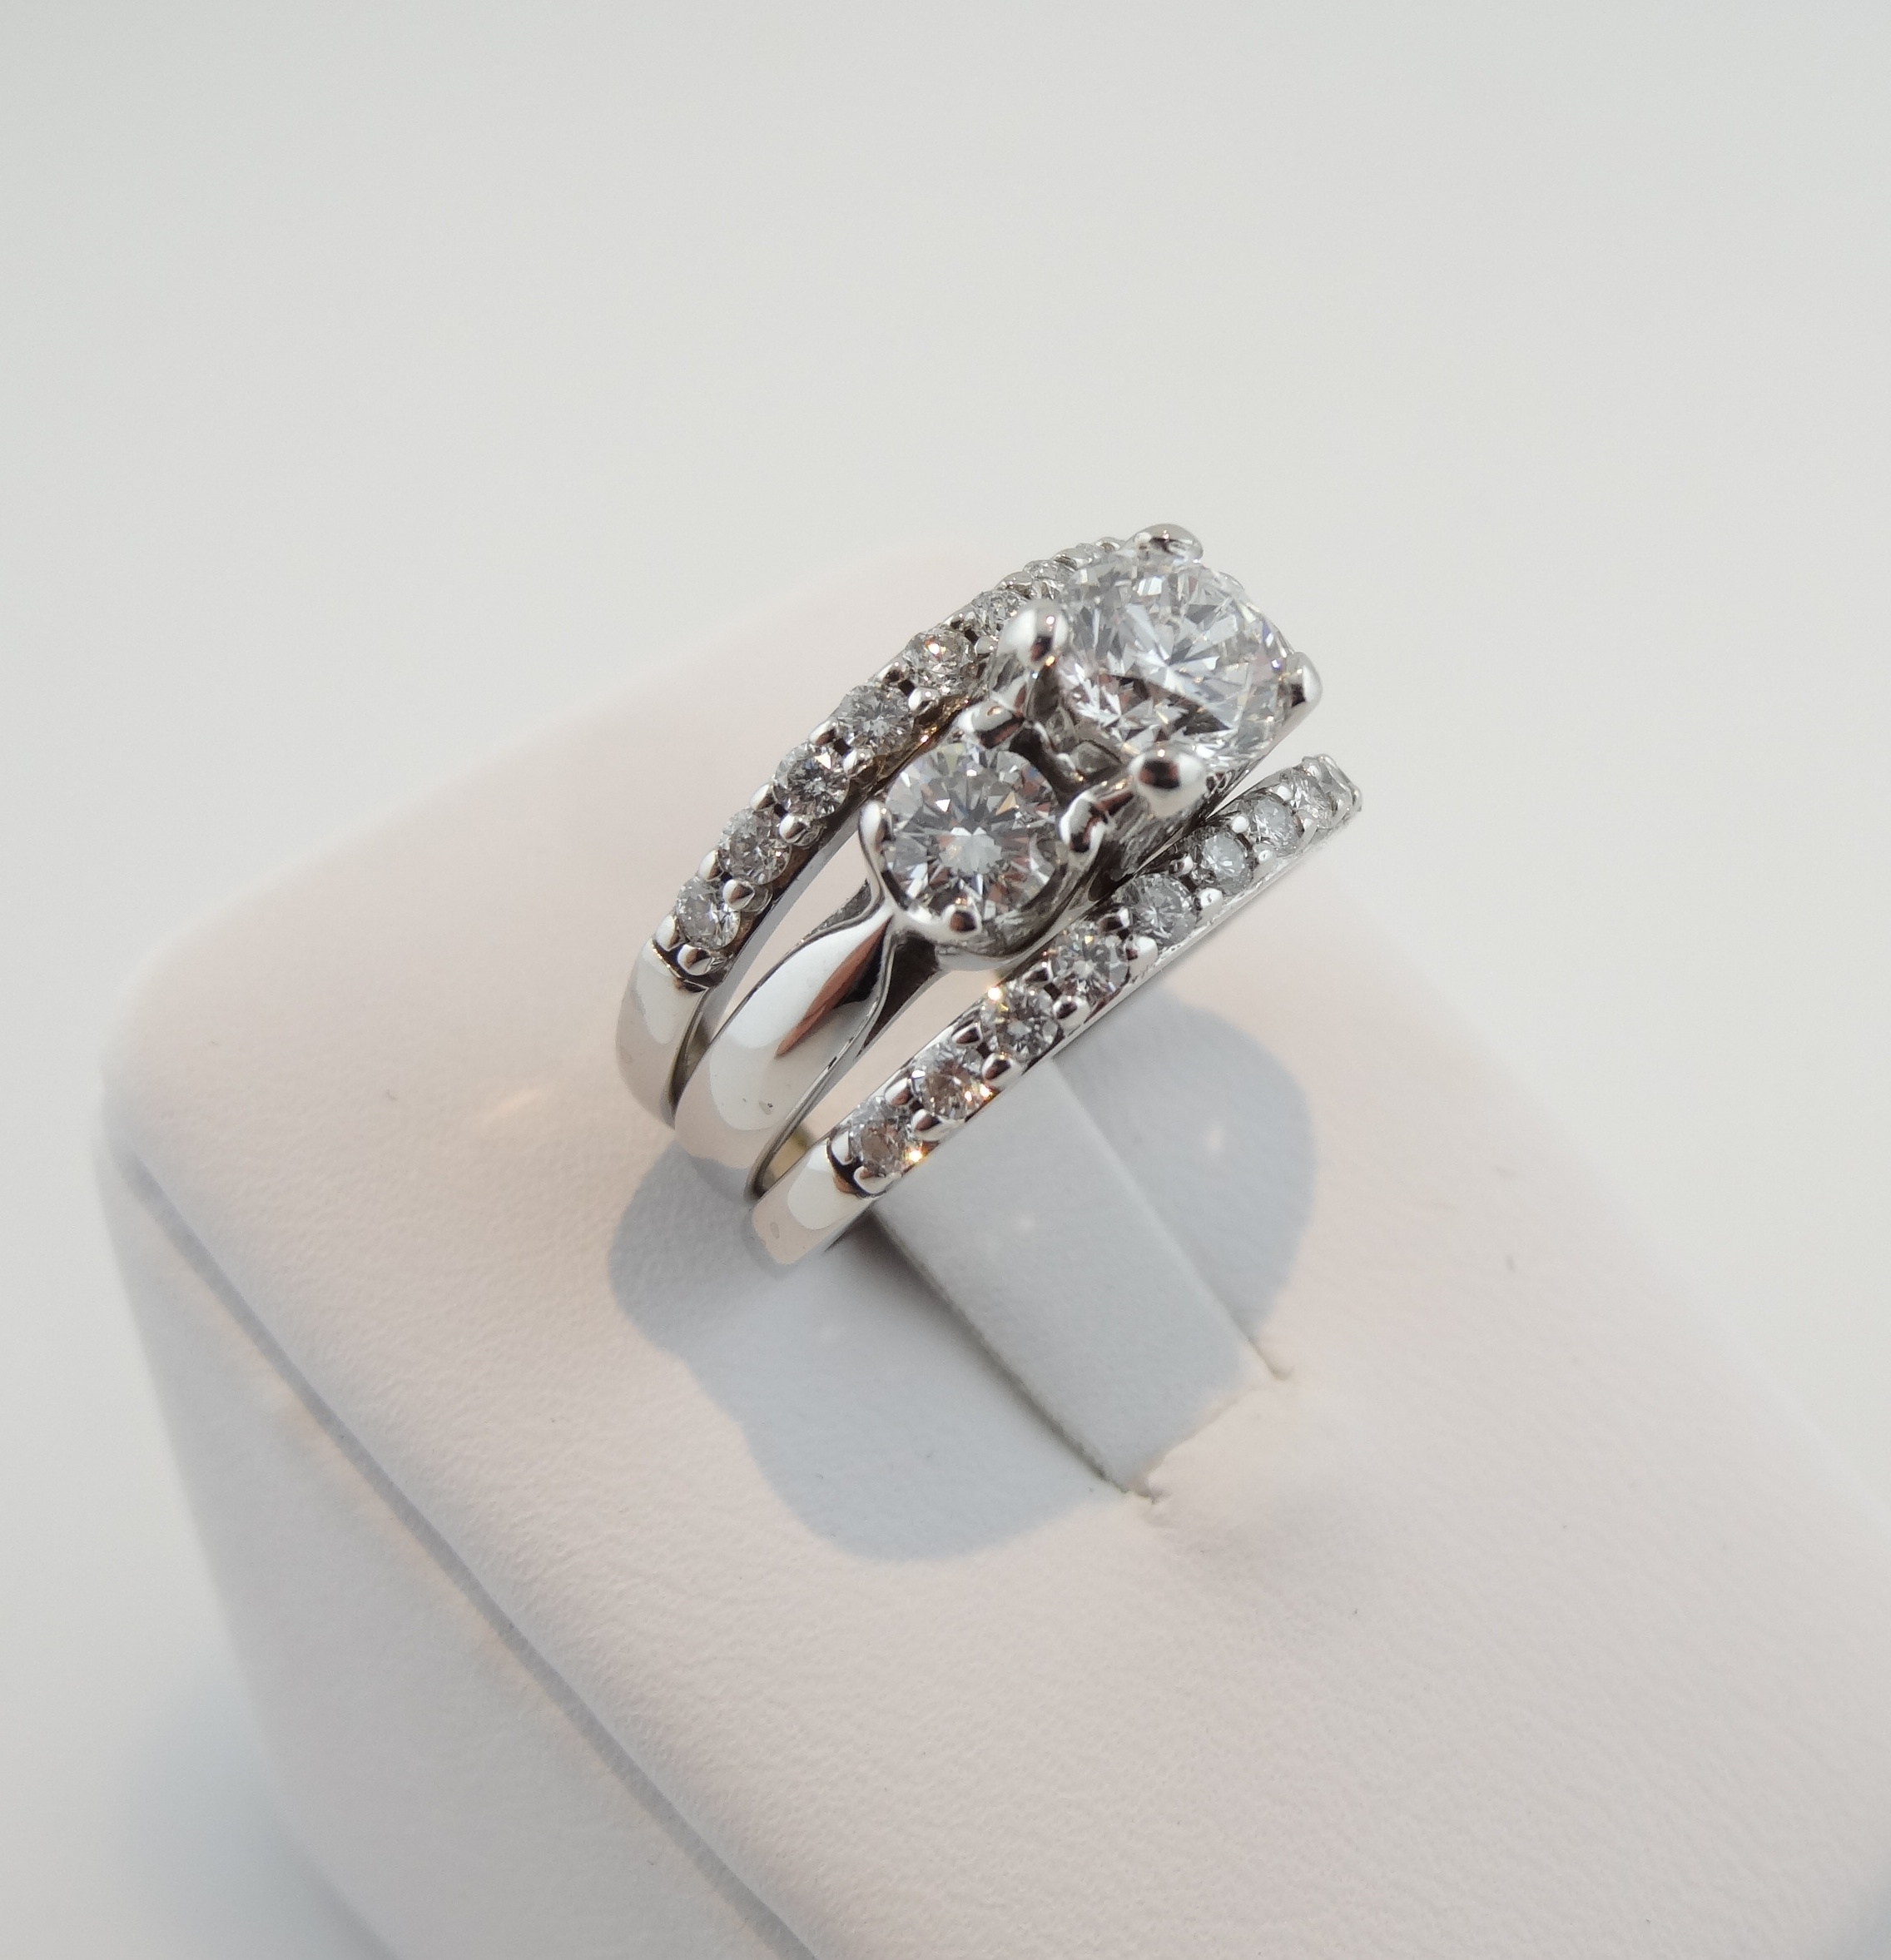 3 stone Diamond ring with diamond wedding bands on each side 165TCW